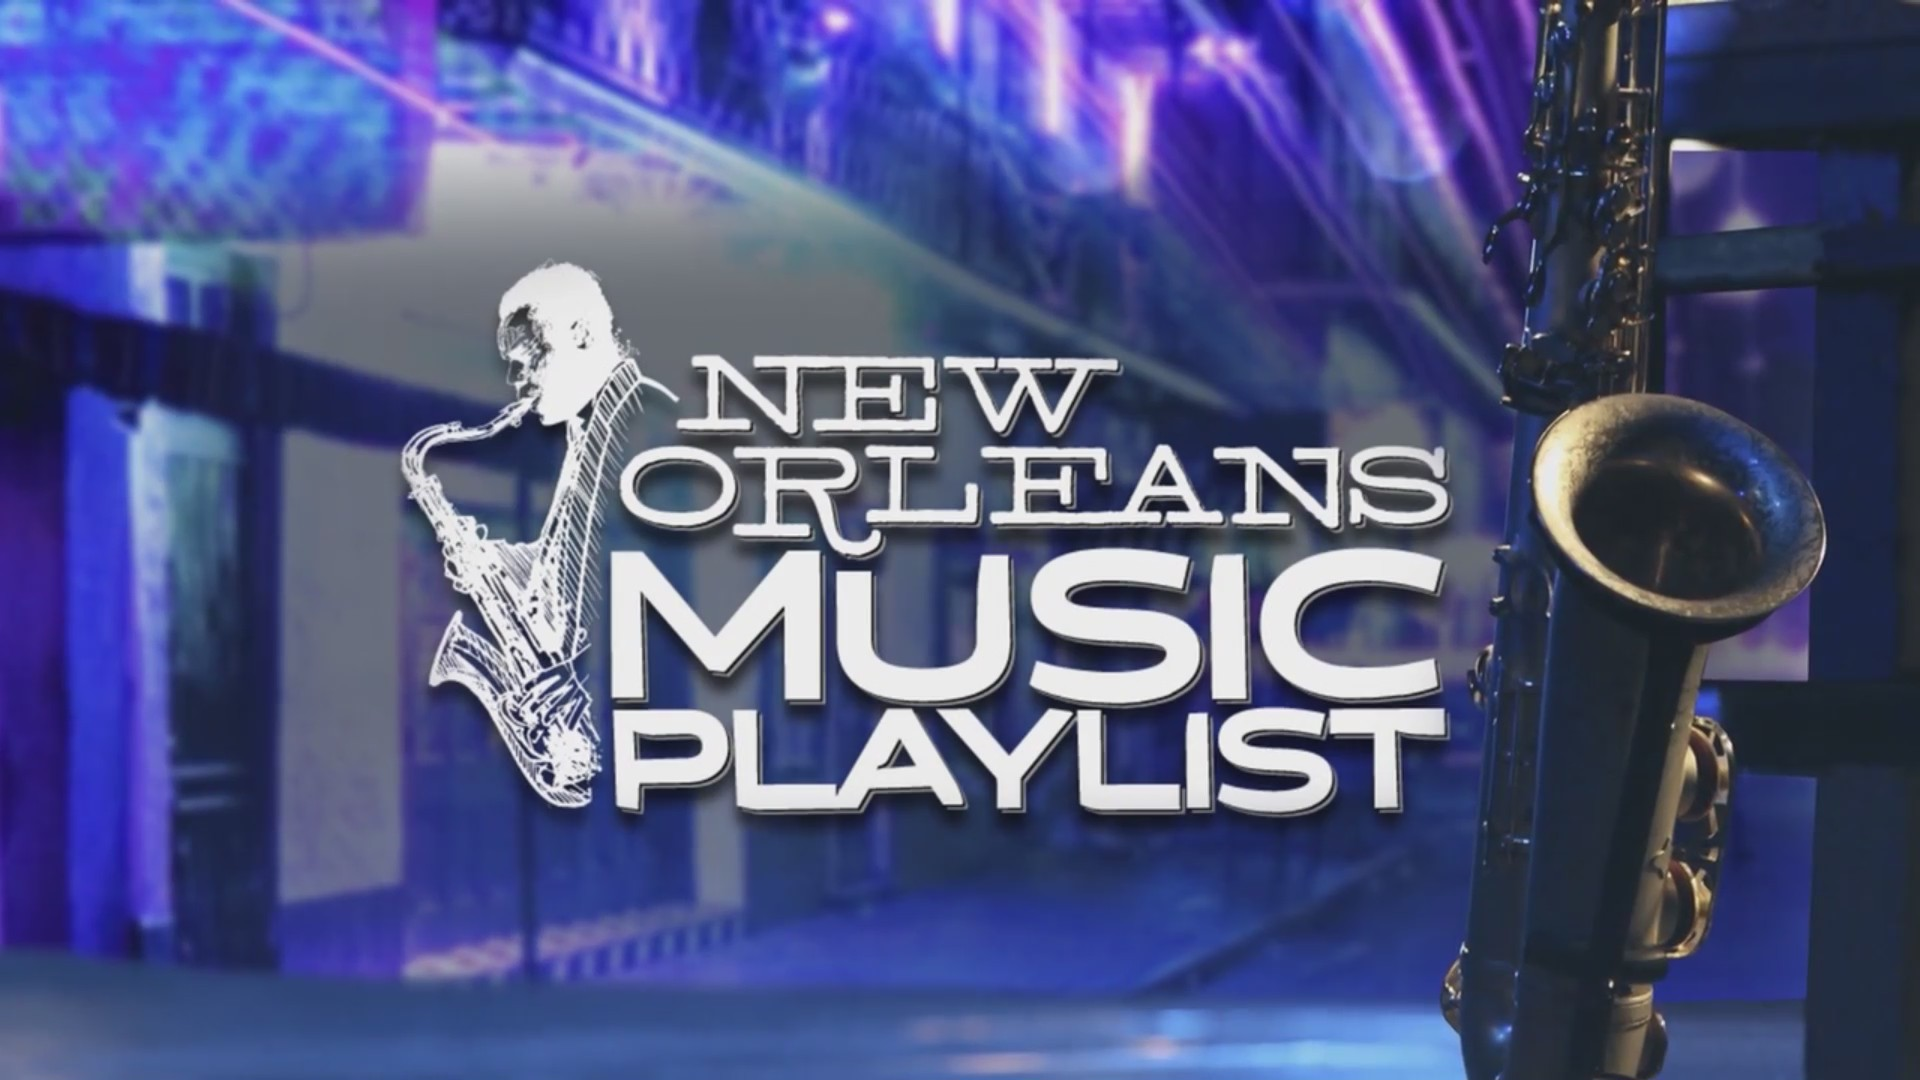 New Orleans Music Playlist